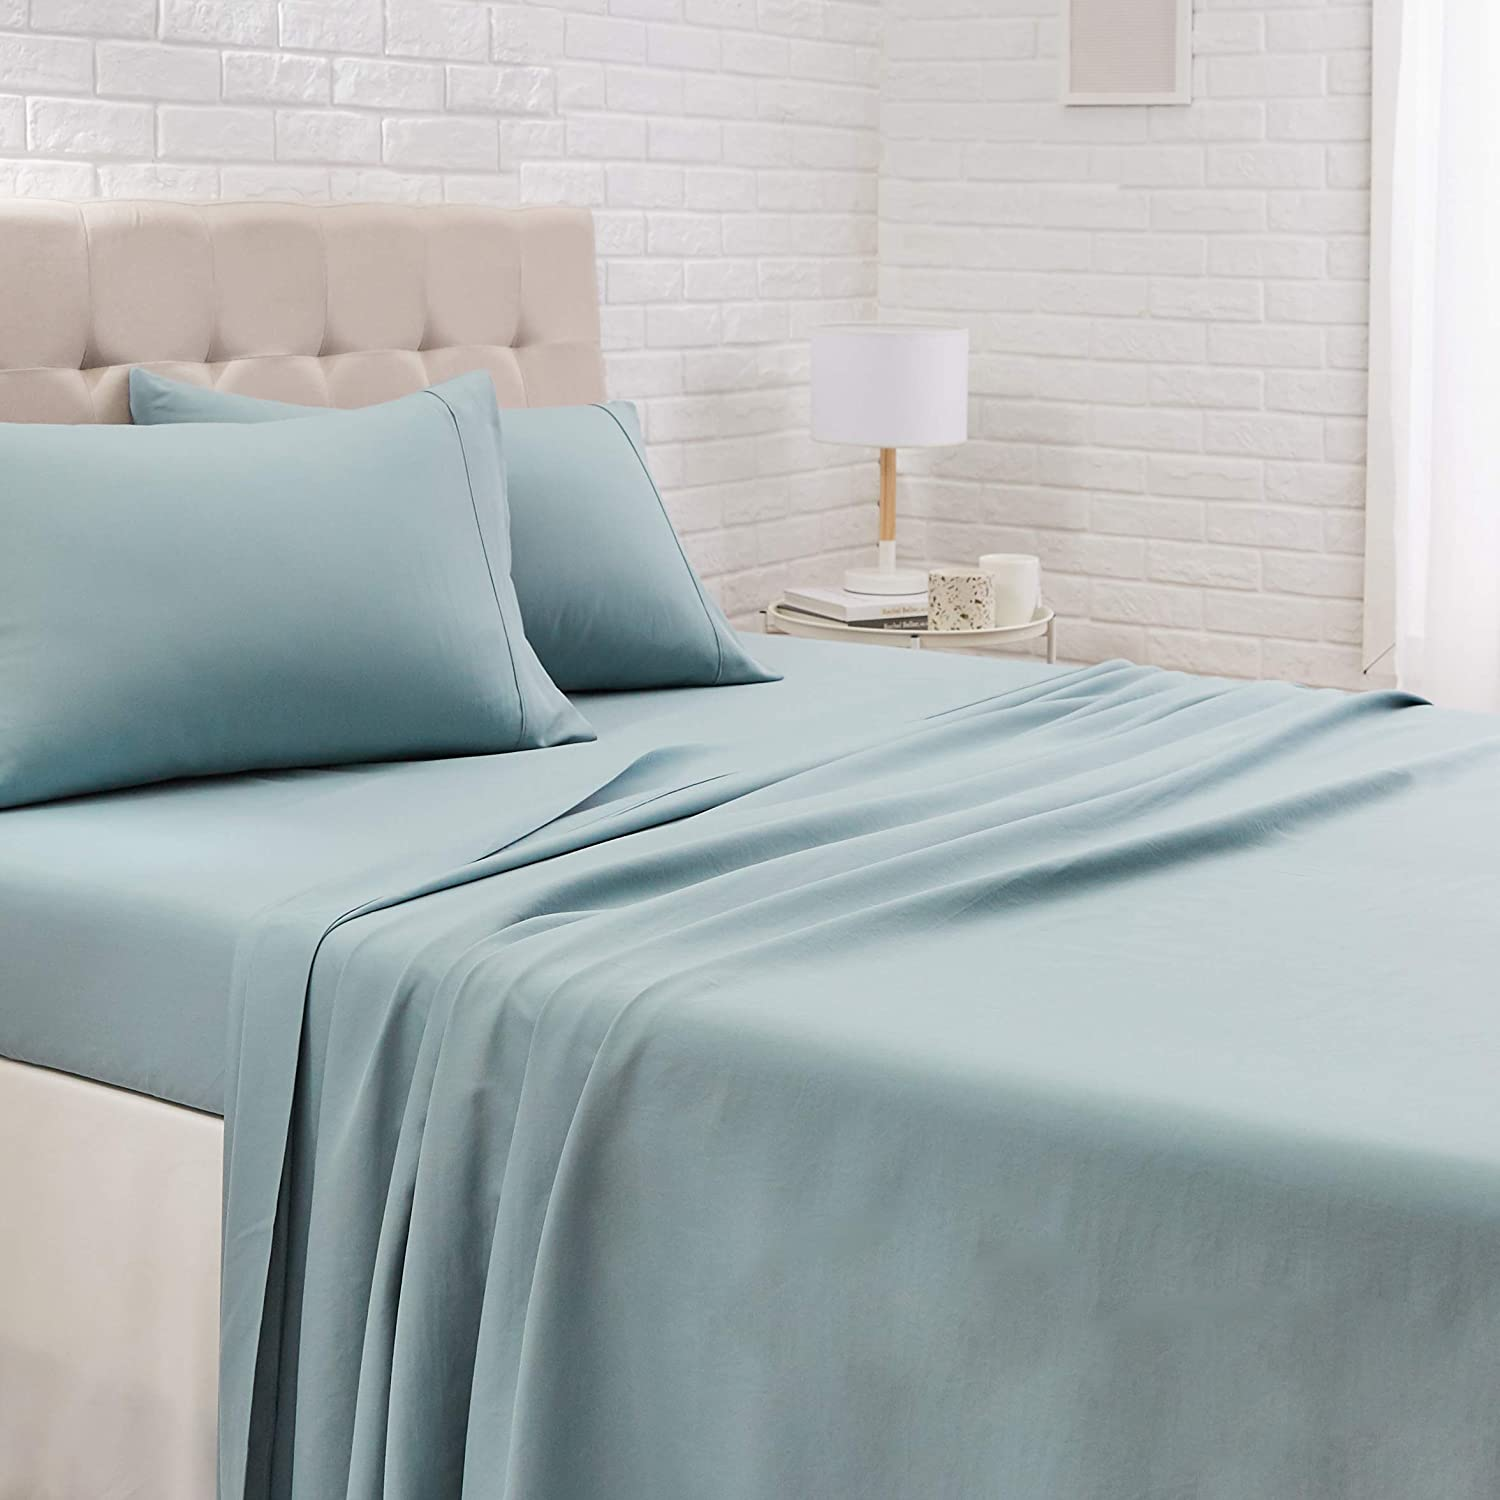 AmazonBasics Microfiber King Bed Sheet Set